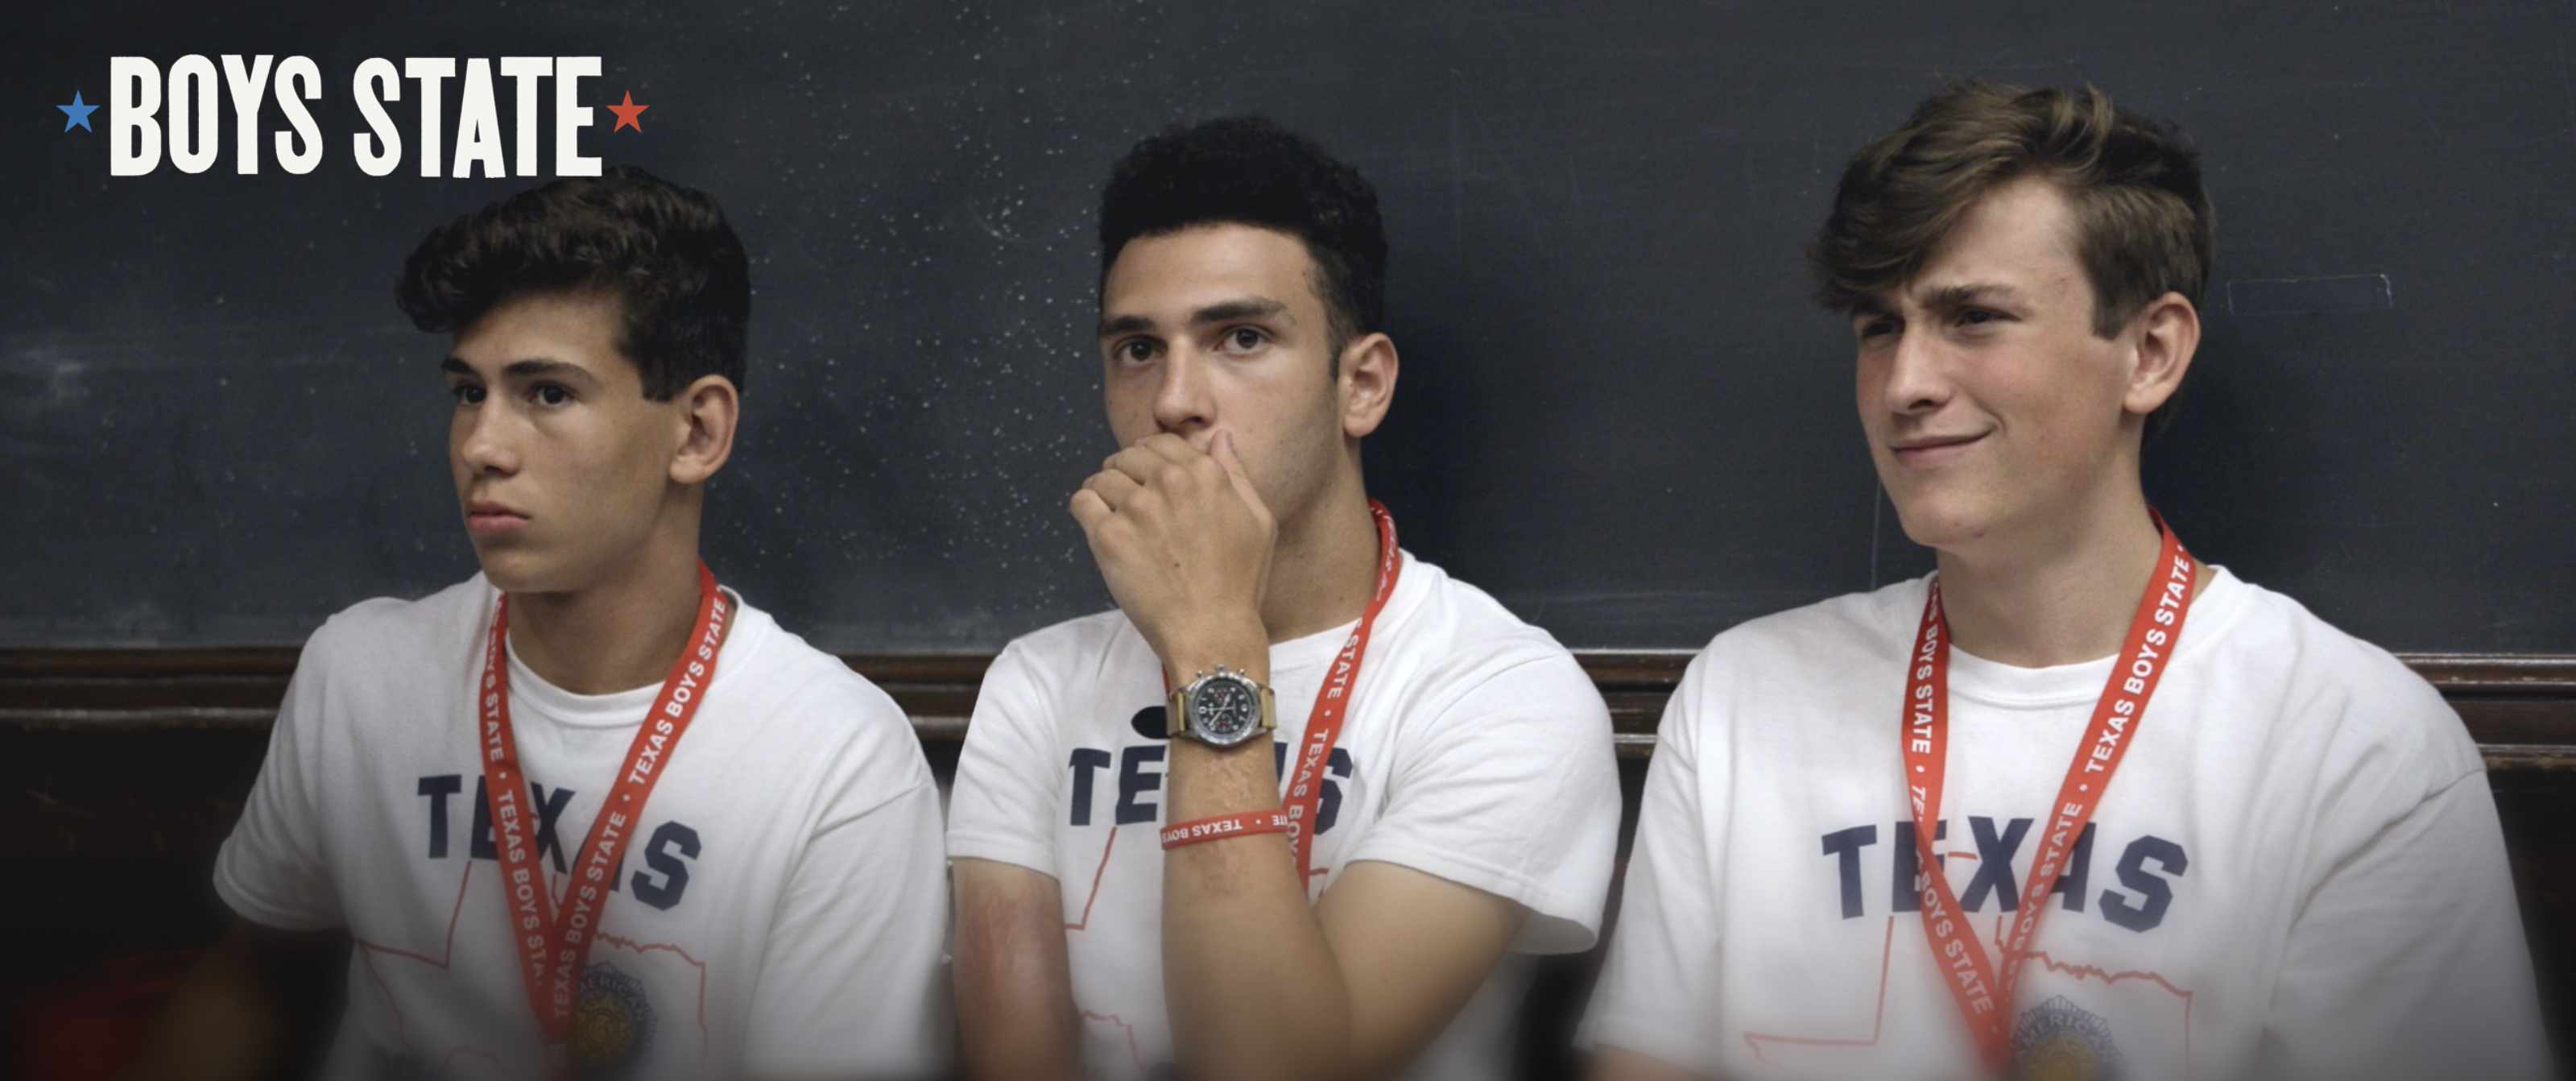 screenshot from the Boys State documentary